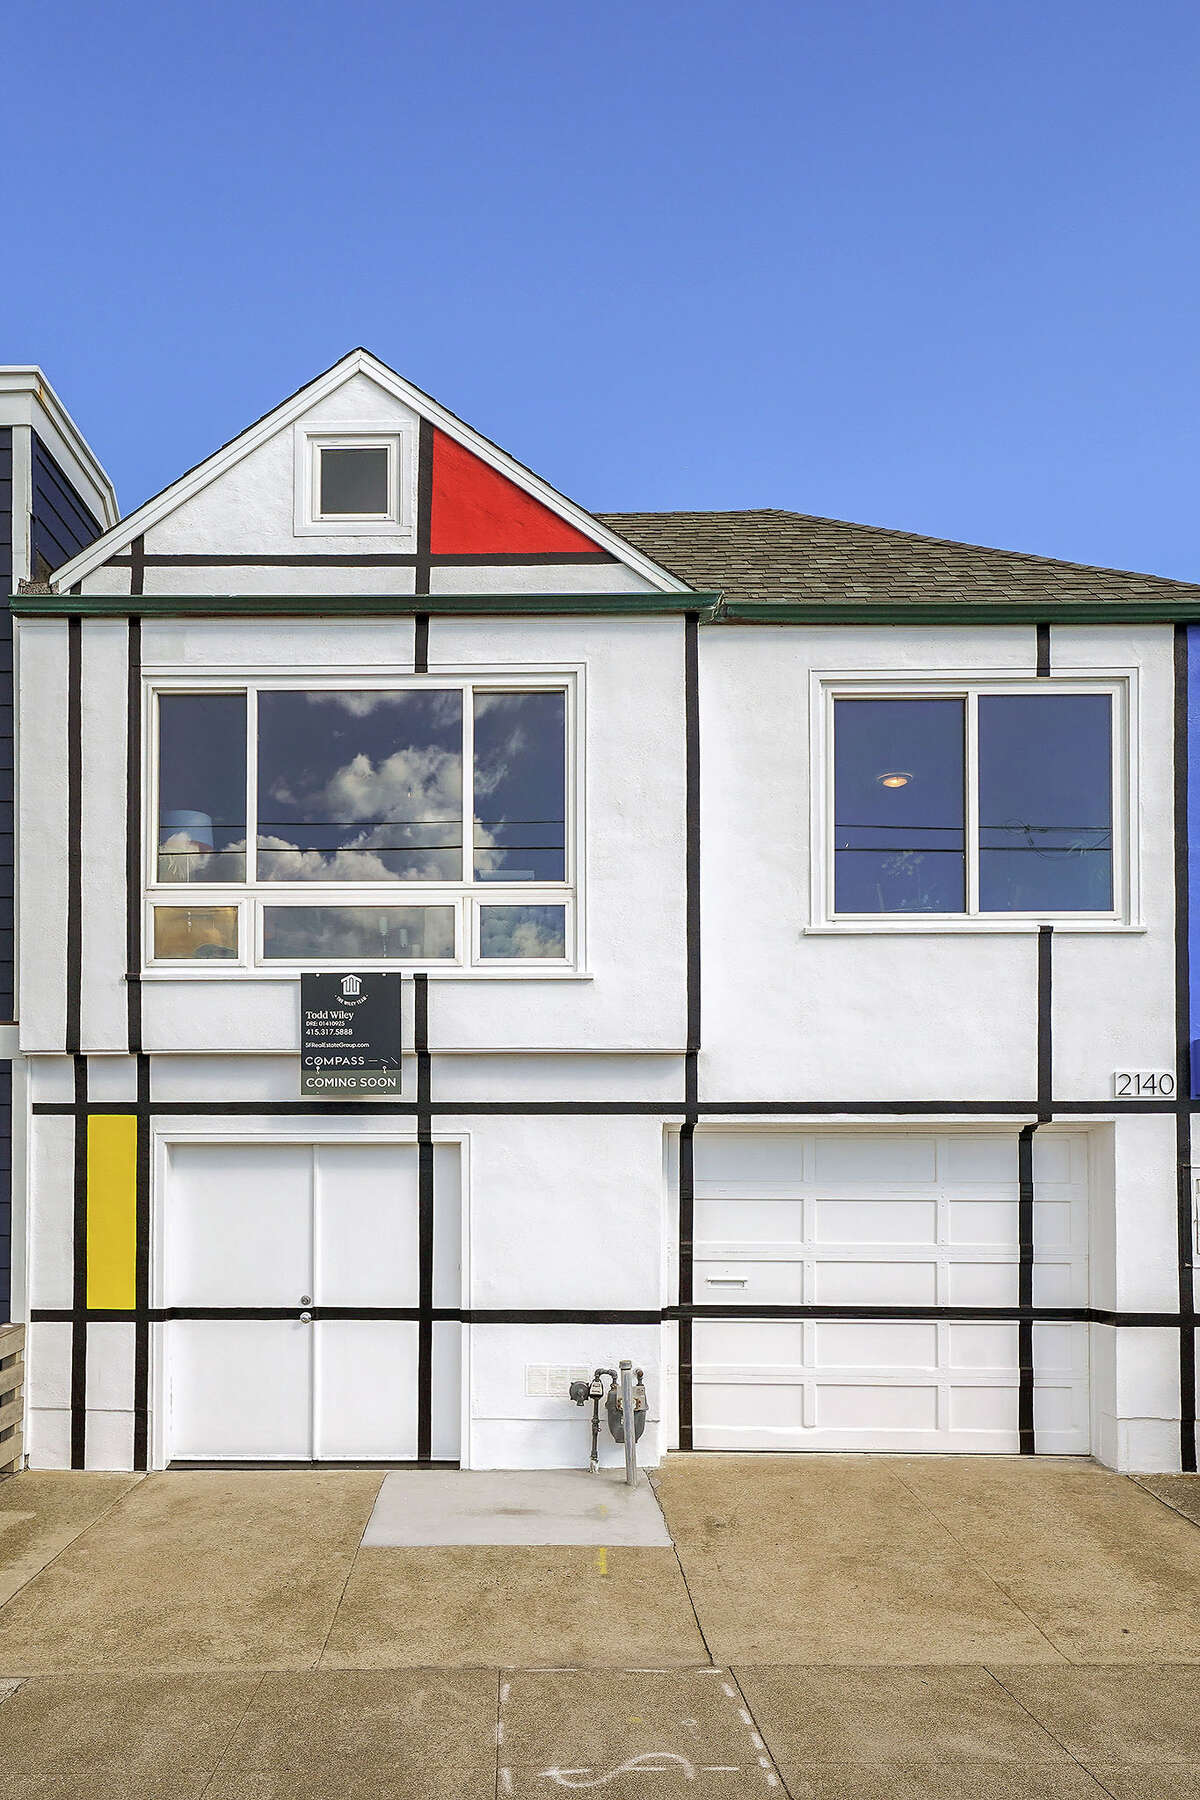 Do you know this house? If you've driven San Francisco's Great Highway you might know it. The exterior paint job was inspired by the Dutch artist Piet Mondrian. The home at 2140 Great Highway is listed for $1.495 million.